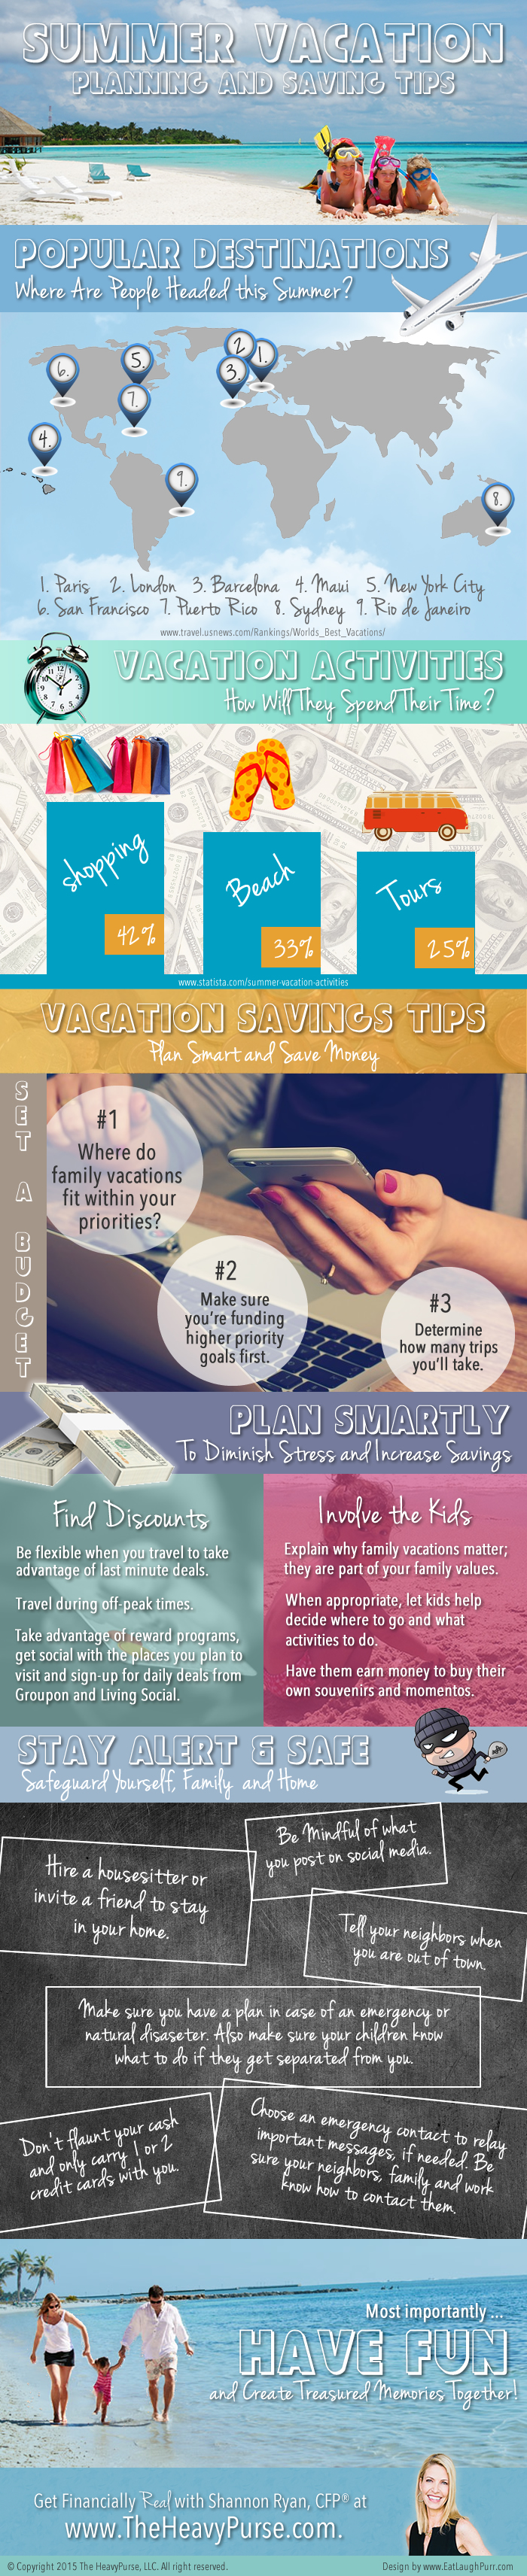 Summer Vacation Planning and Savings Tips #Infographic | www.TheHeavyPurse.com